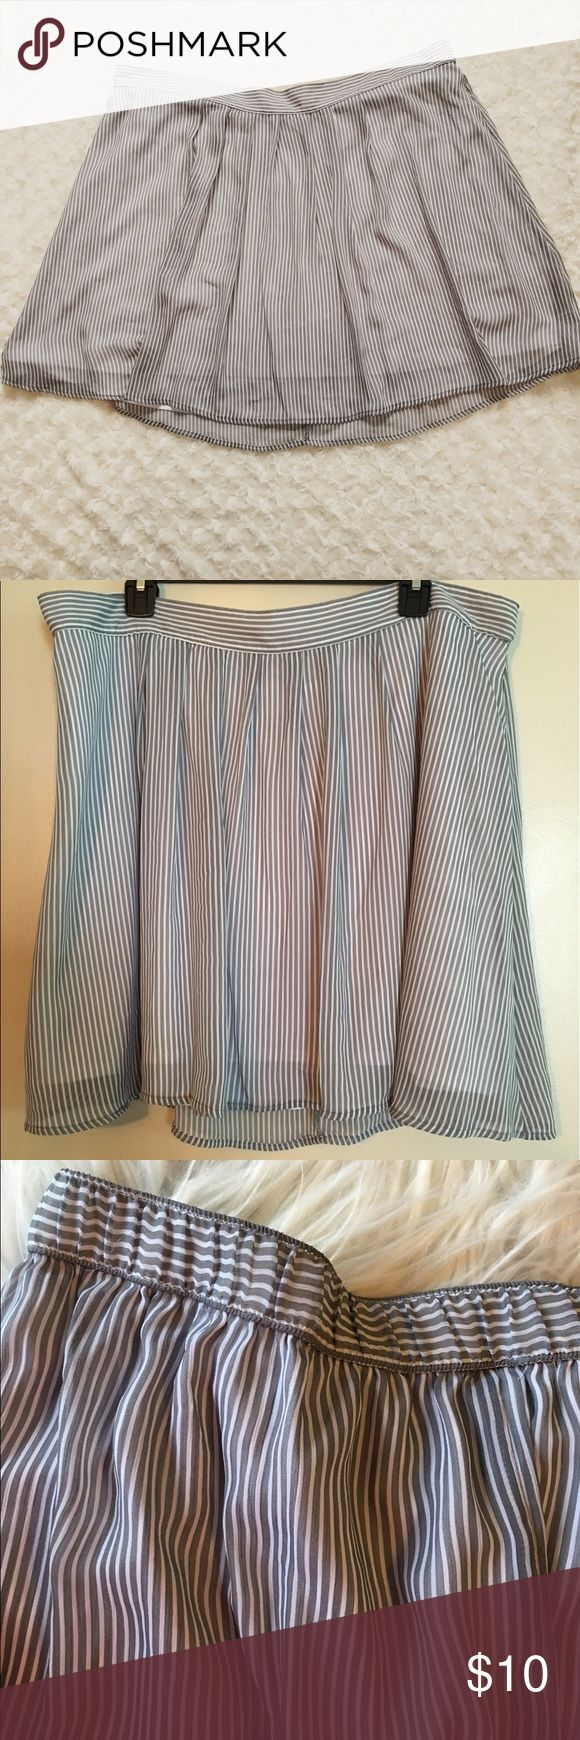 "Old Navy XL Stripe Skirt Flirty, fully lined, striped skirt from Old Navy.  There's a tiny spot on the liner that you cannot see while wearing.  Please see pictures.  In some light the stripes look grayish blue in other light they look gray.  The third picture is as close to natural light as I could capture.  The back of the waist band is elastic.  18"" long. Old Navy Skirts"